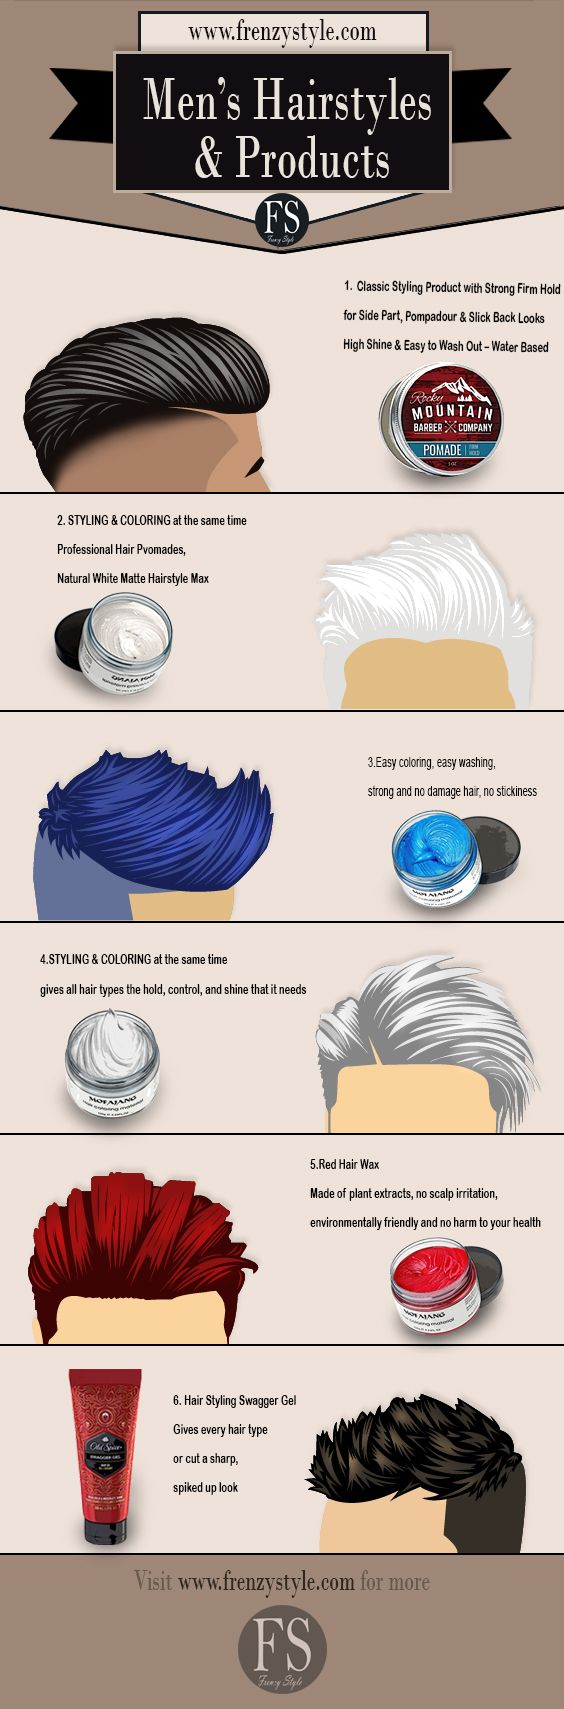 Different types of mens haircuts  best images about men hairstyles on pinterest  hairstyles menus